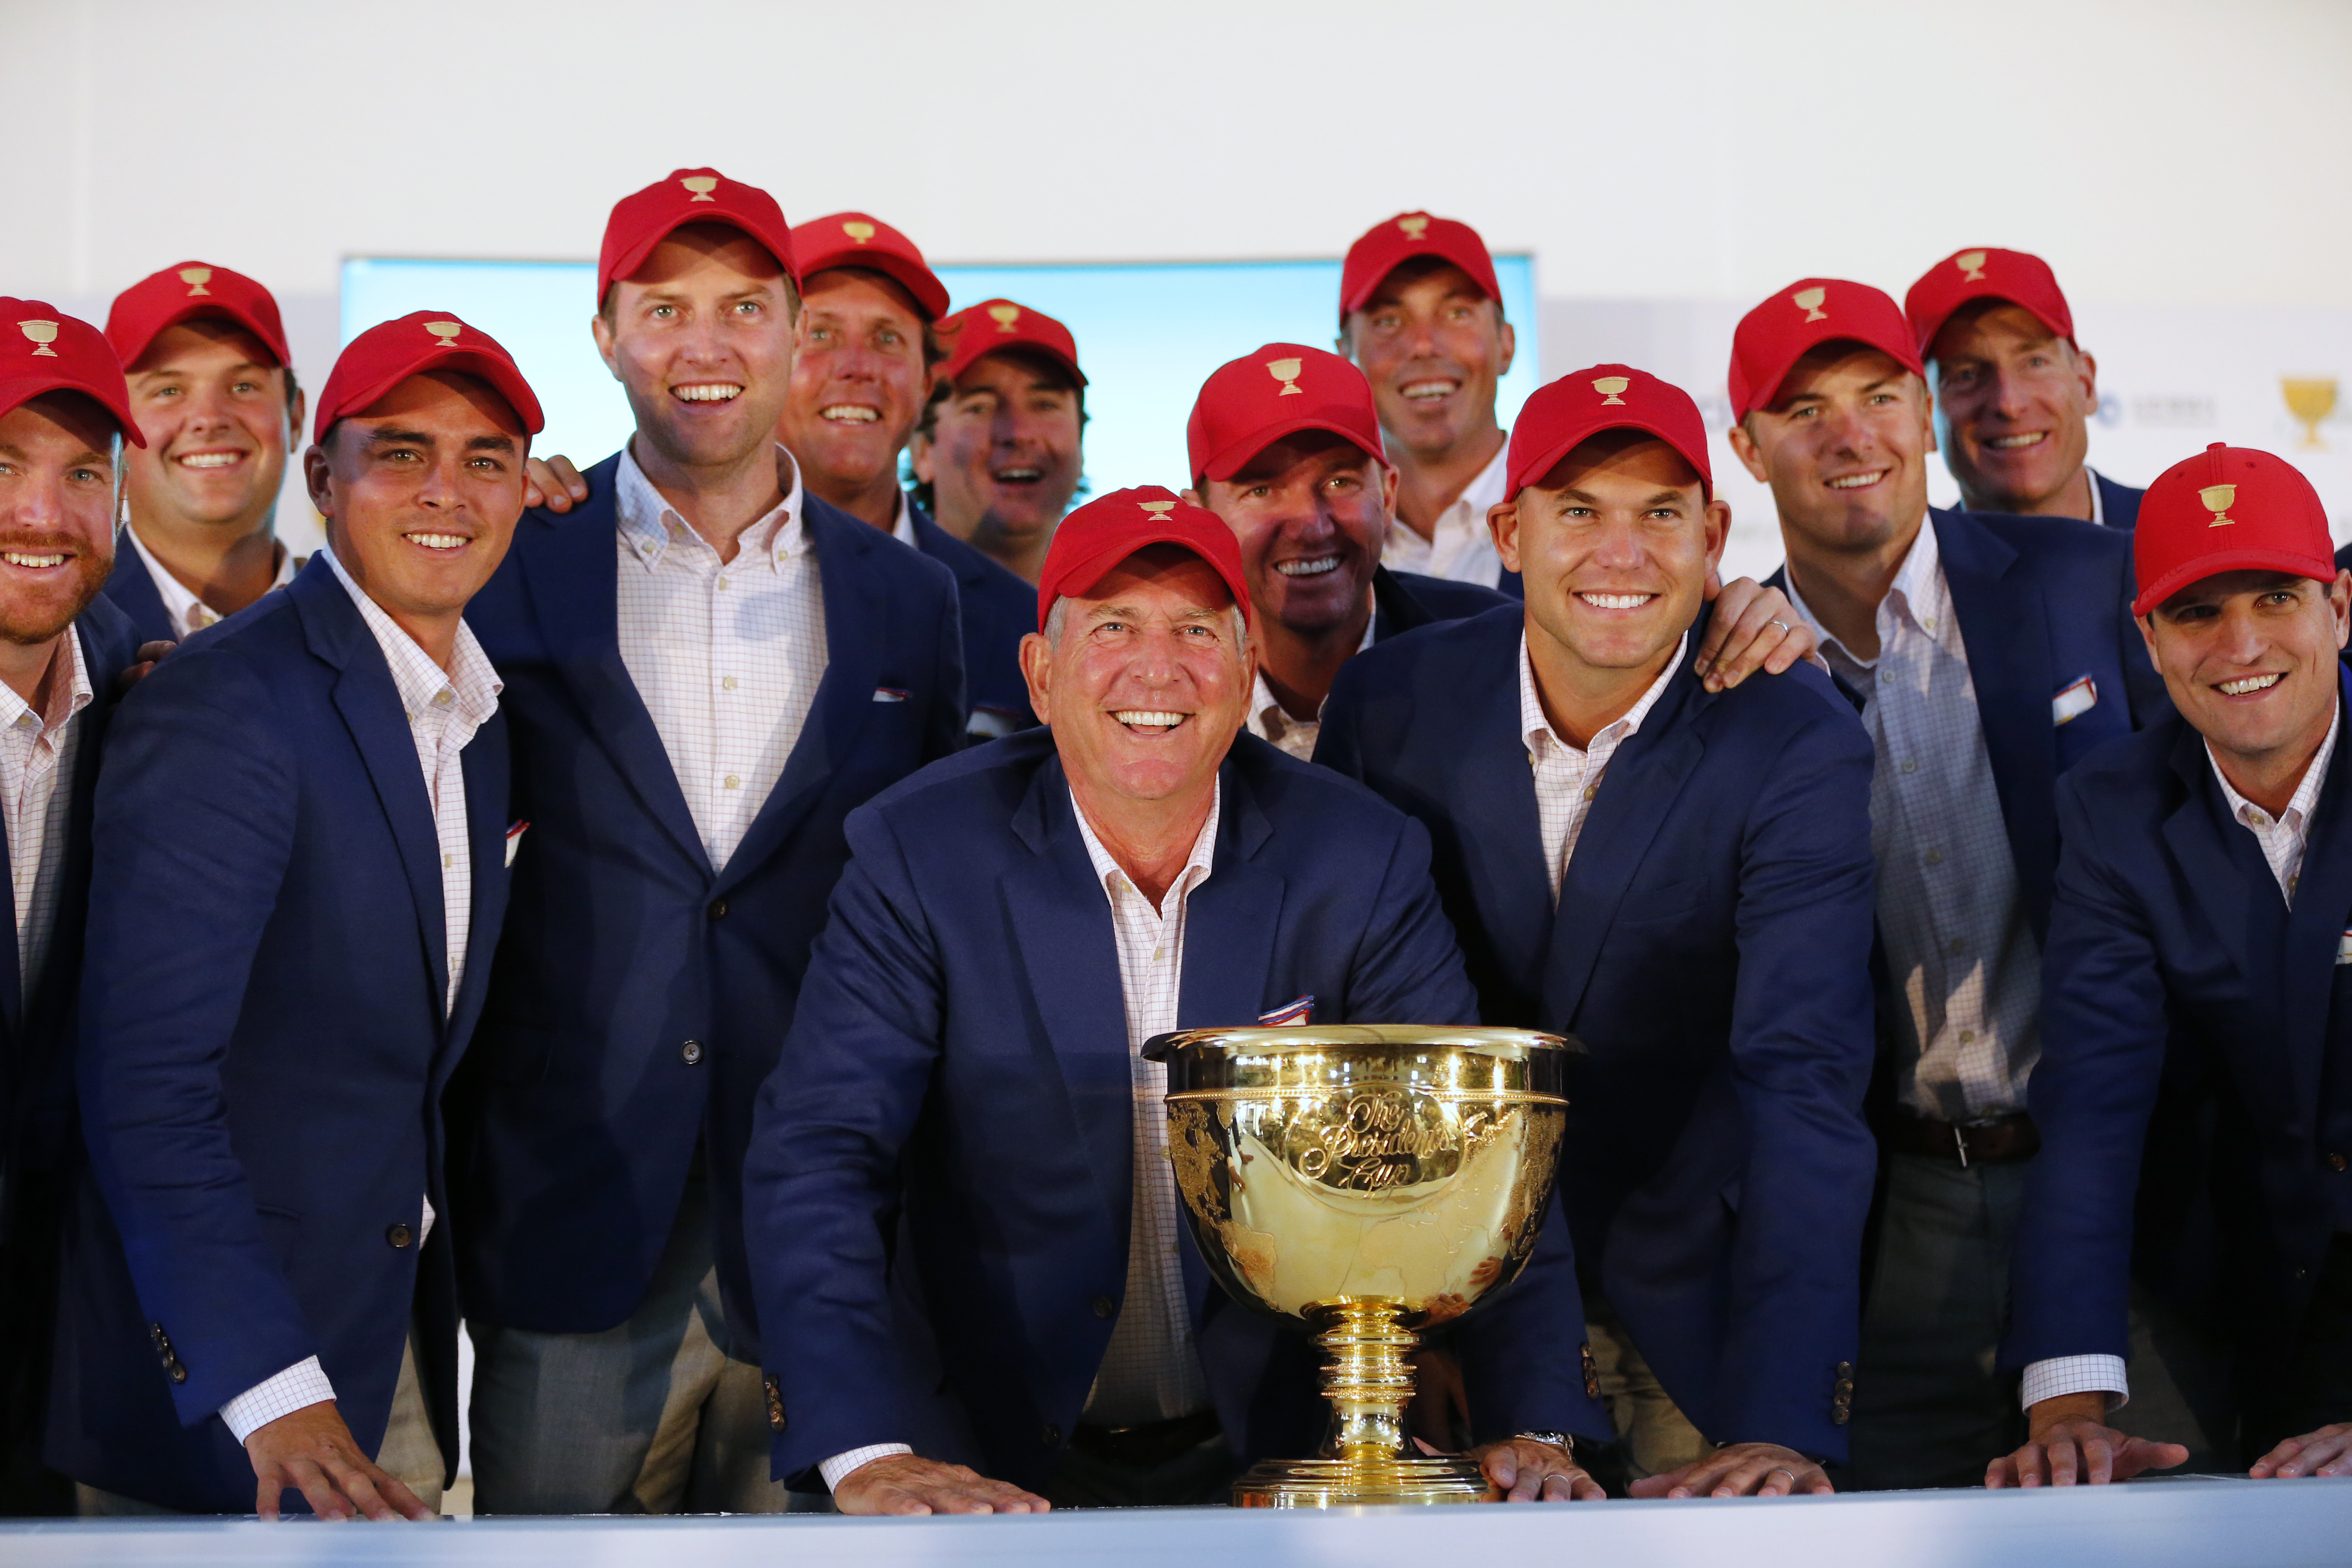 US team captain Jay Haas, front centre, poses with his team after they defeated the International team 15.5 to 14.5 to retain the Presidents Cup at the Jack Nicklaus Golf Club Korea.